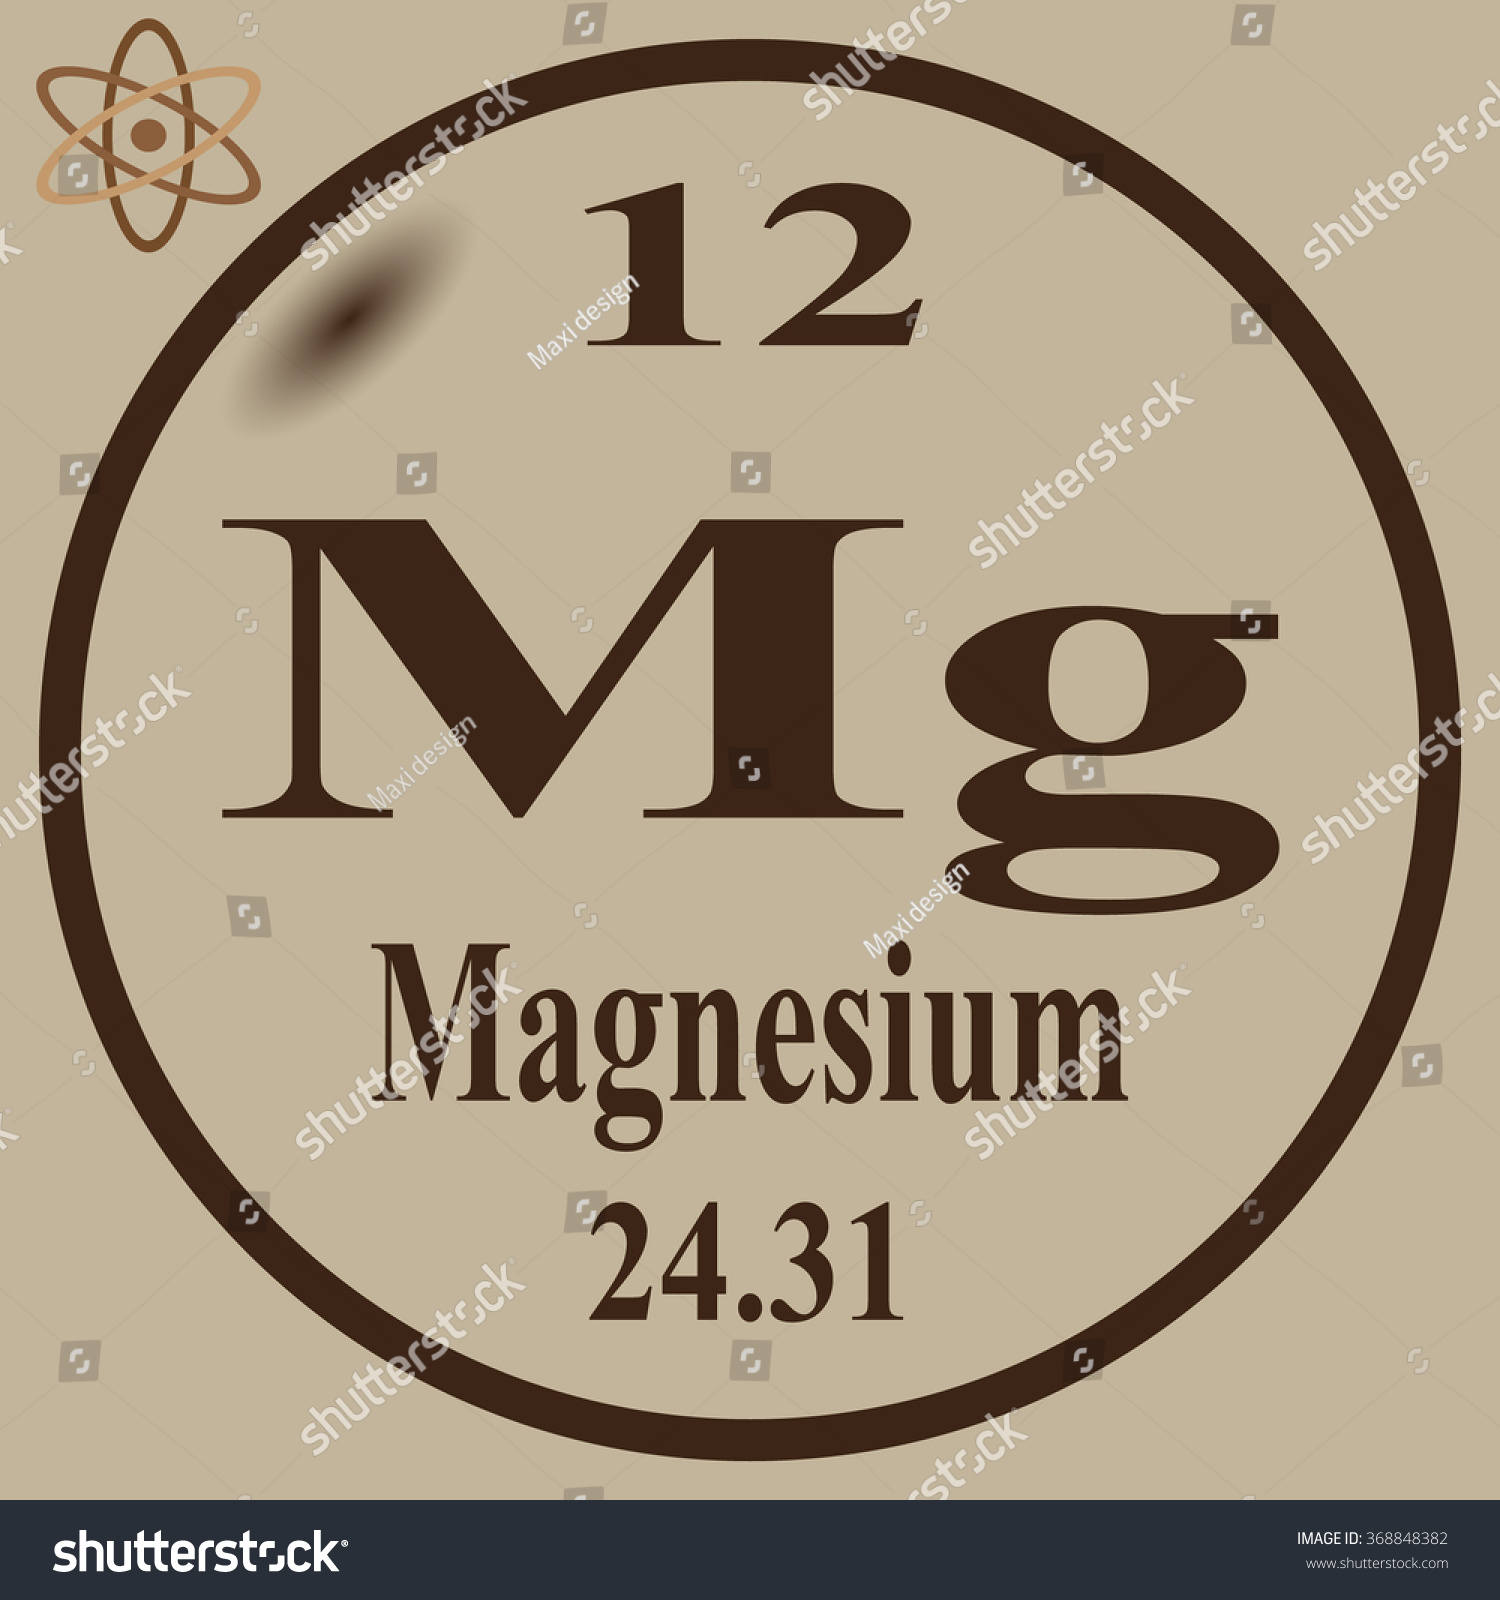 Periodic table of elements magnesium gallery periodic table images periodic table of elements magnesium gallery periodic table images periodic table of elements magnesium images periodic gamestrikefo Gallery